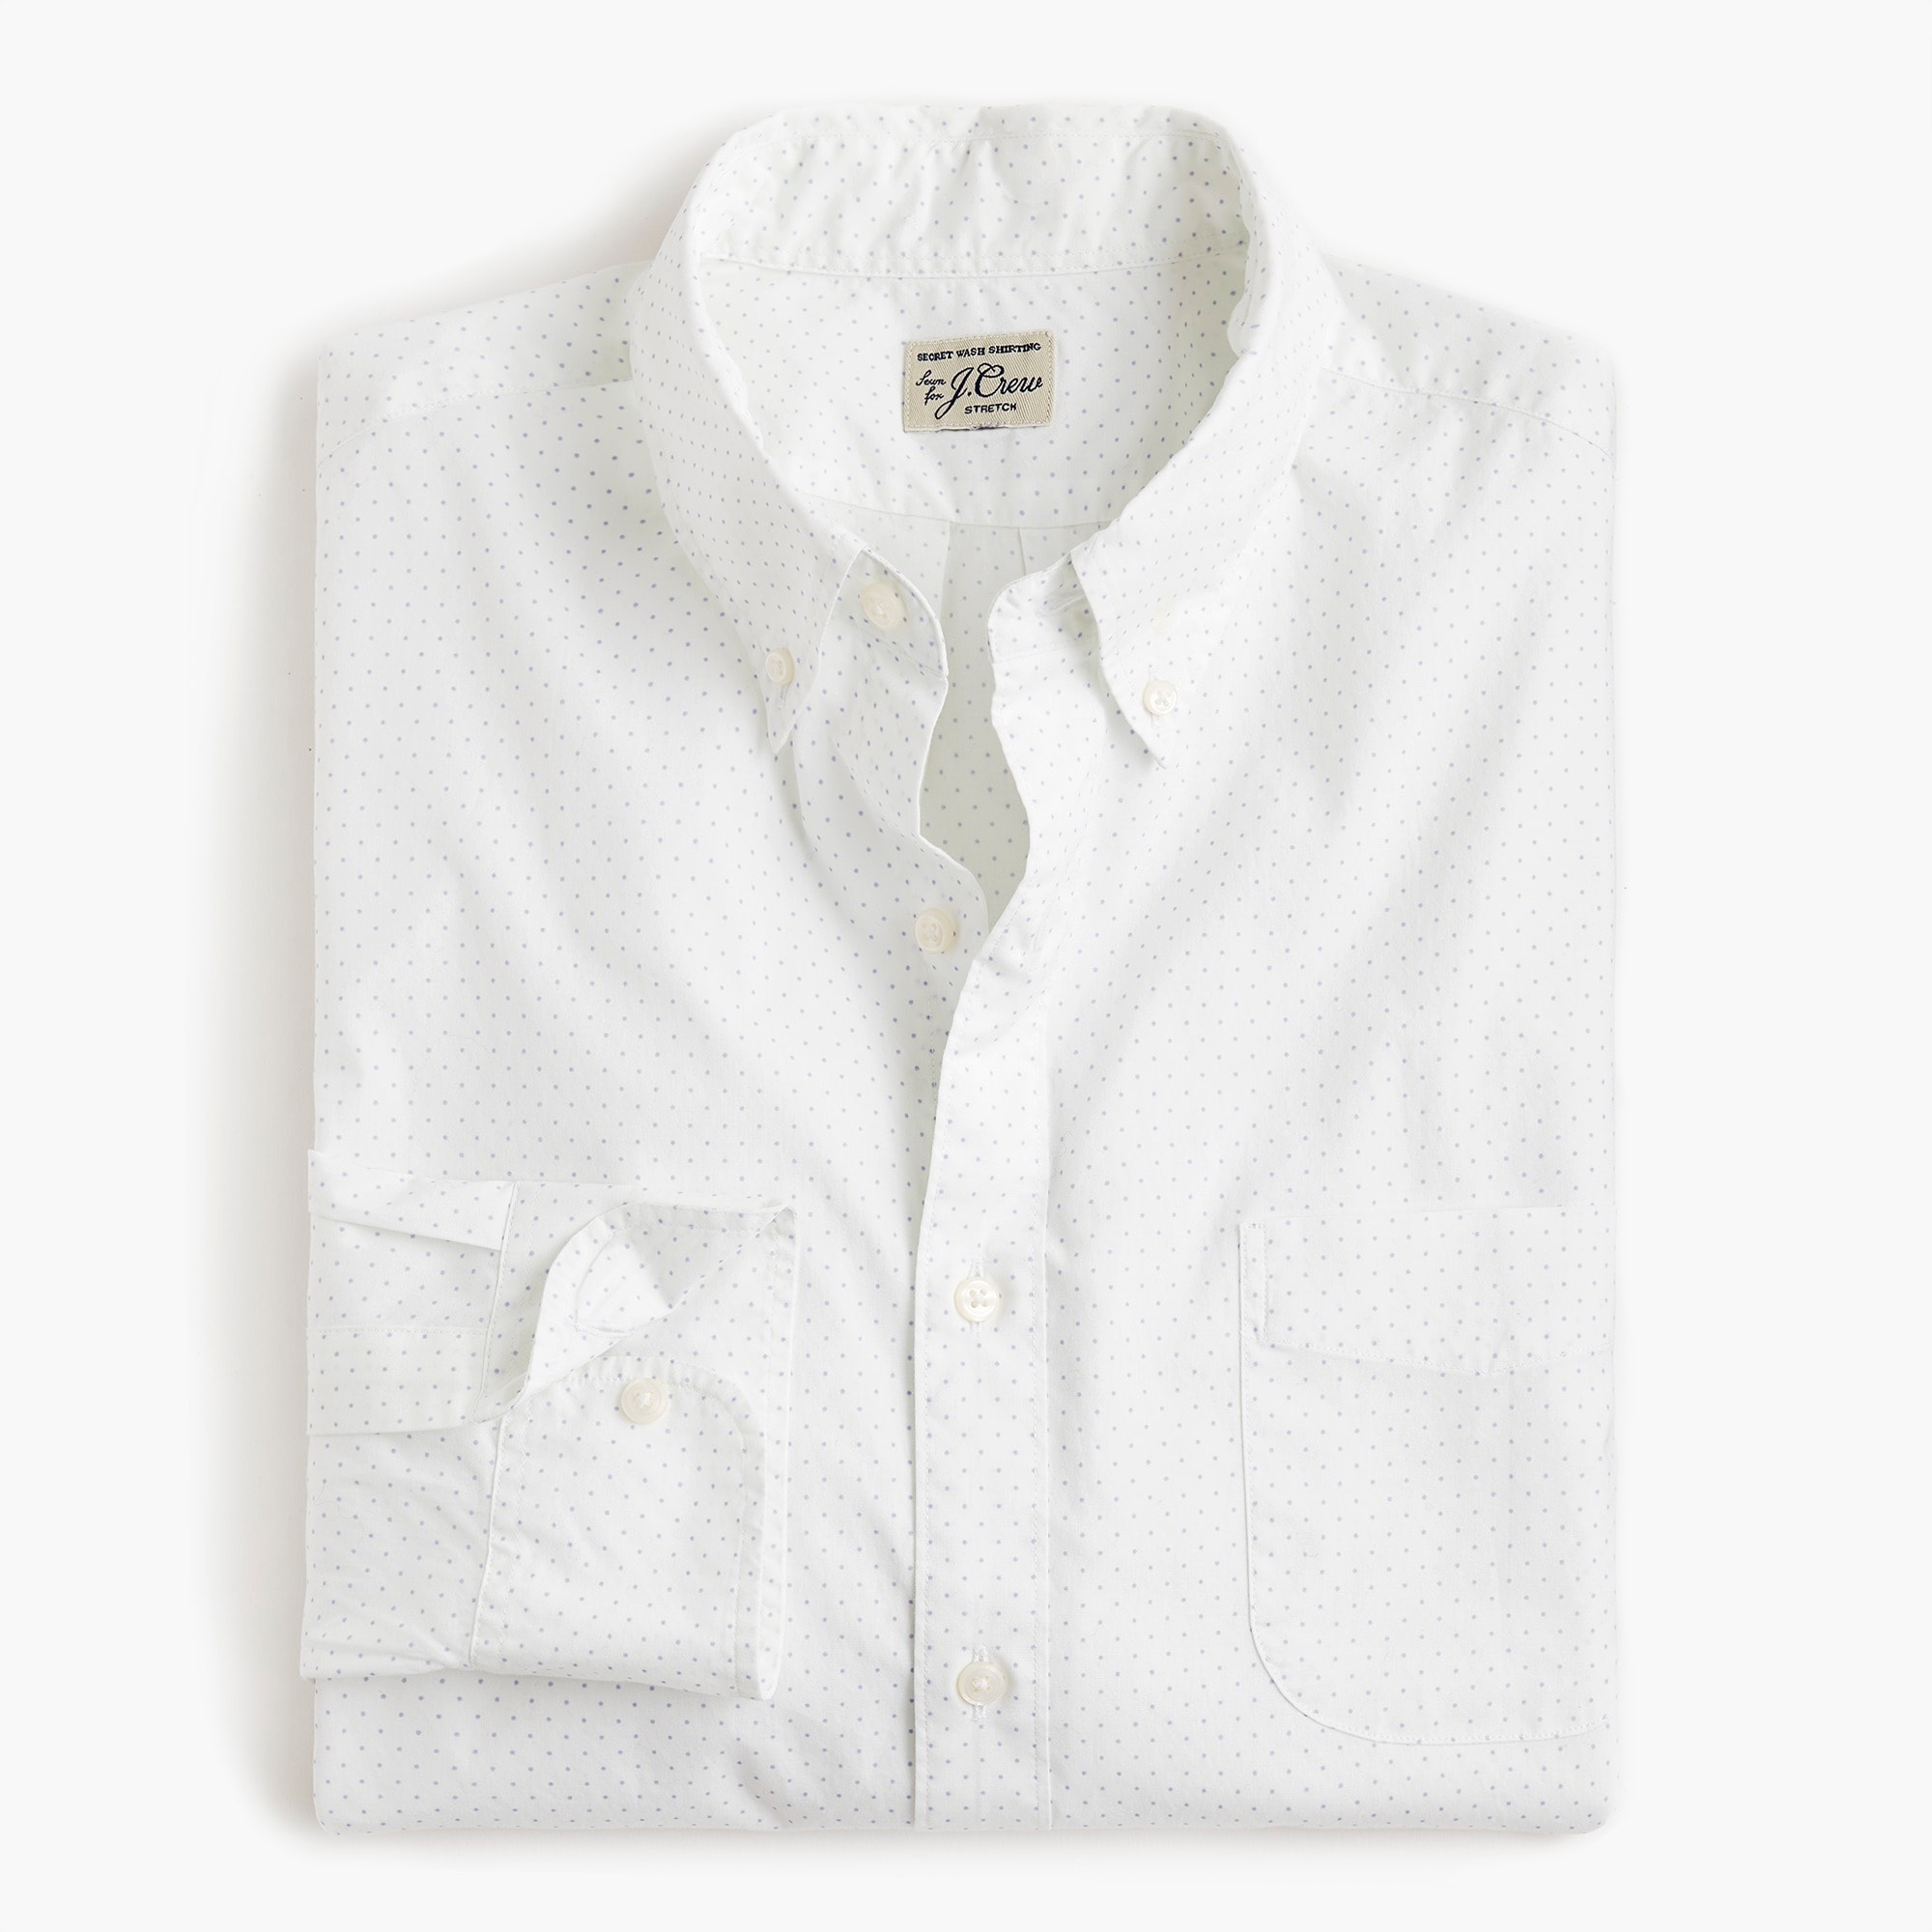 mens Stretch Secret Wash shirt in small dot print